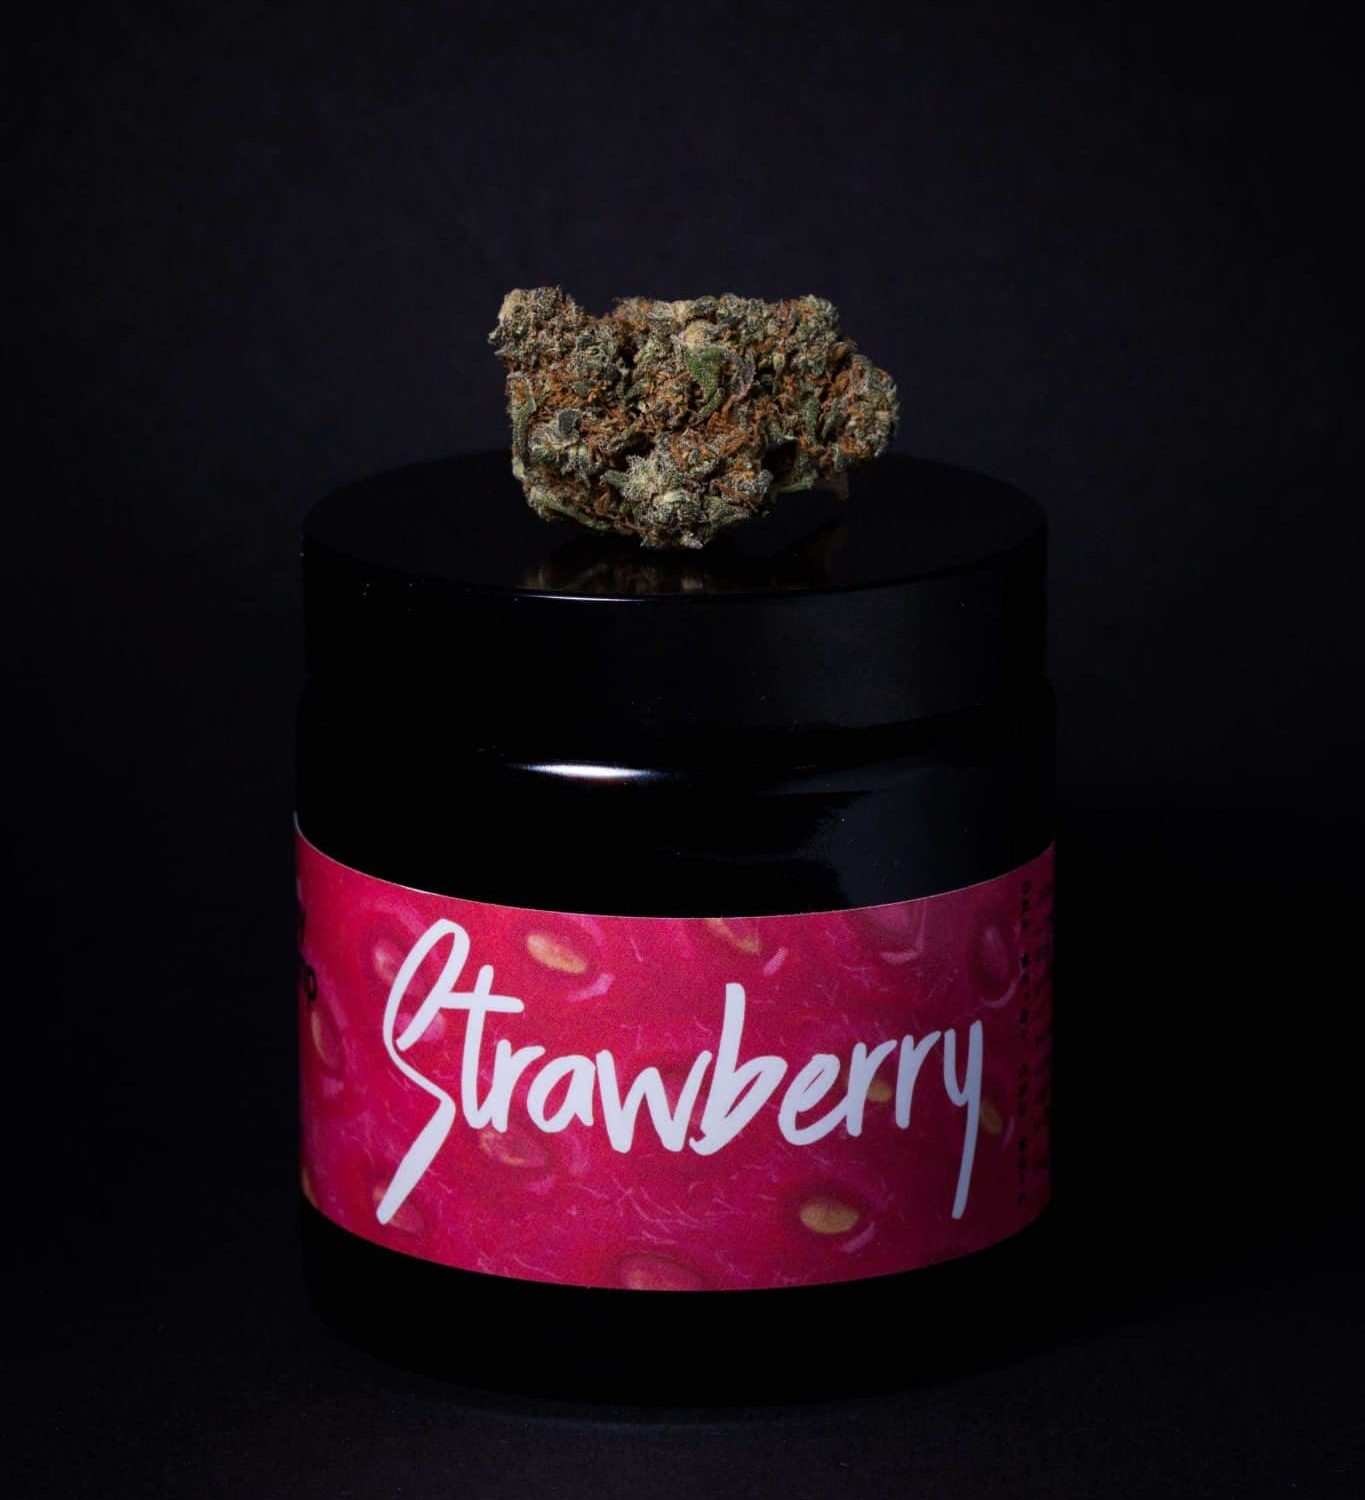 Strawberry 3-6% CBD